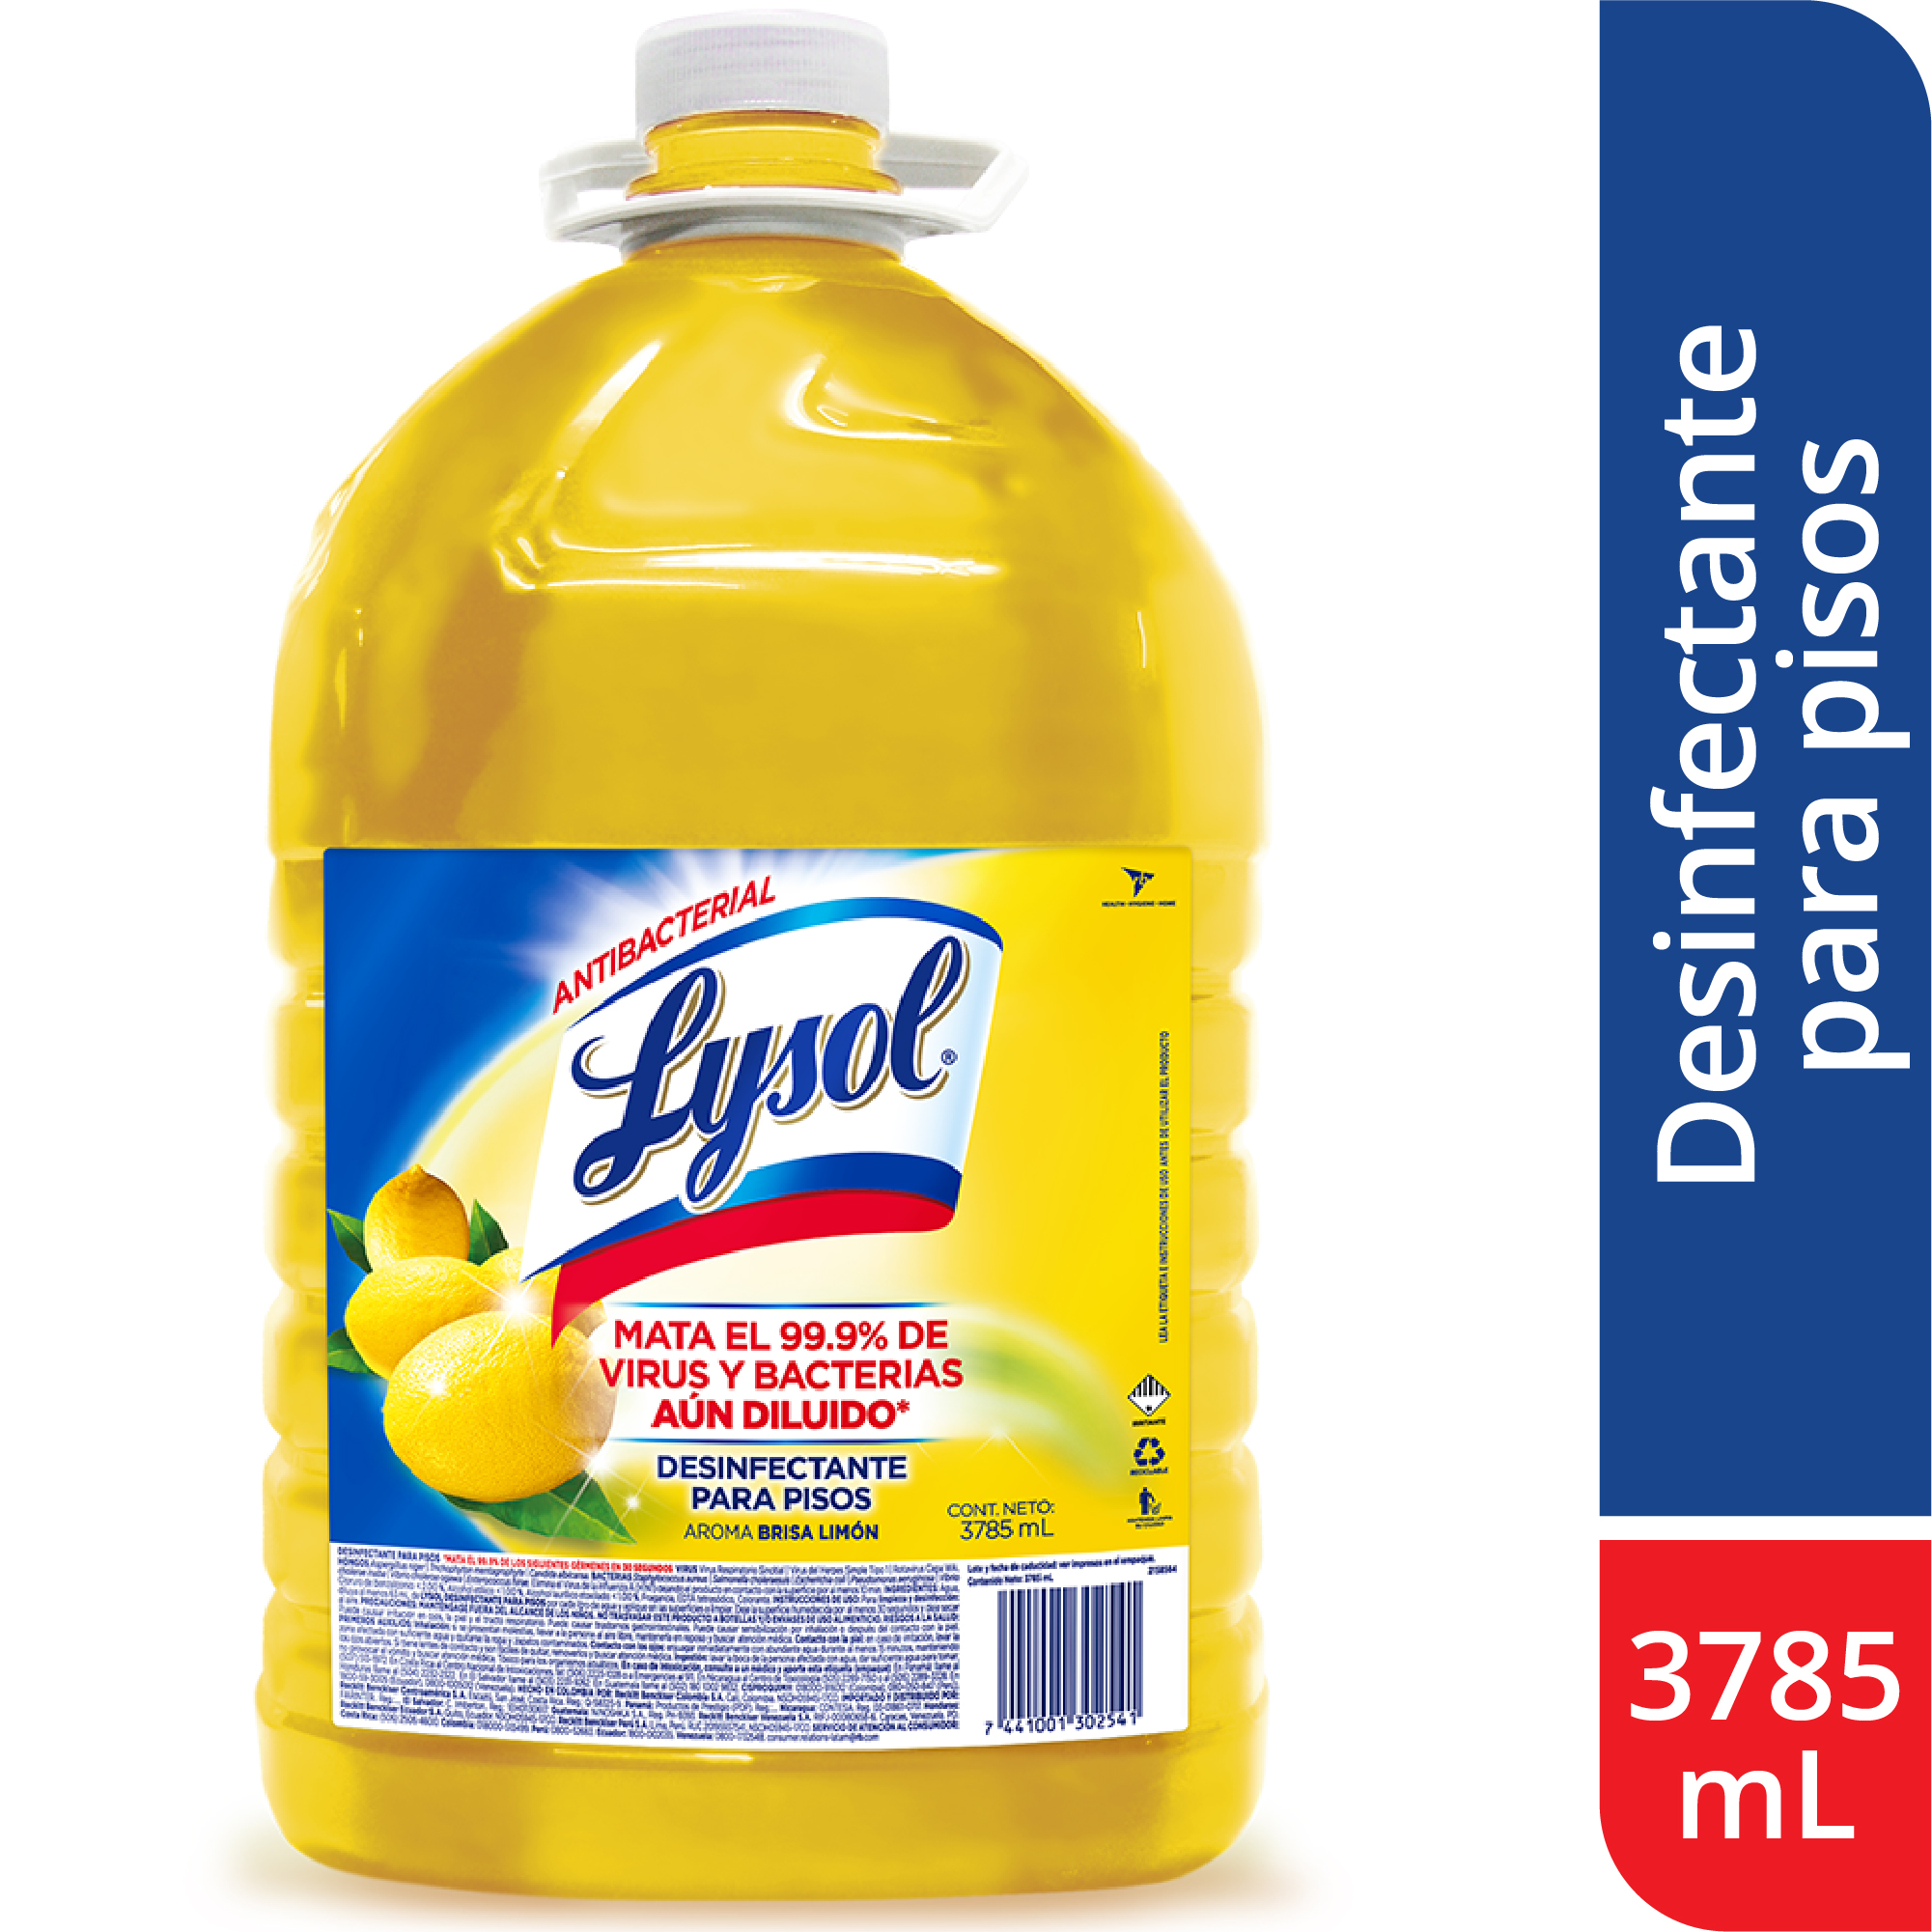 Desinfectante Para Pisos Lysol Citrus 3785ml